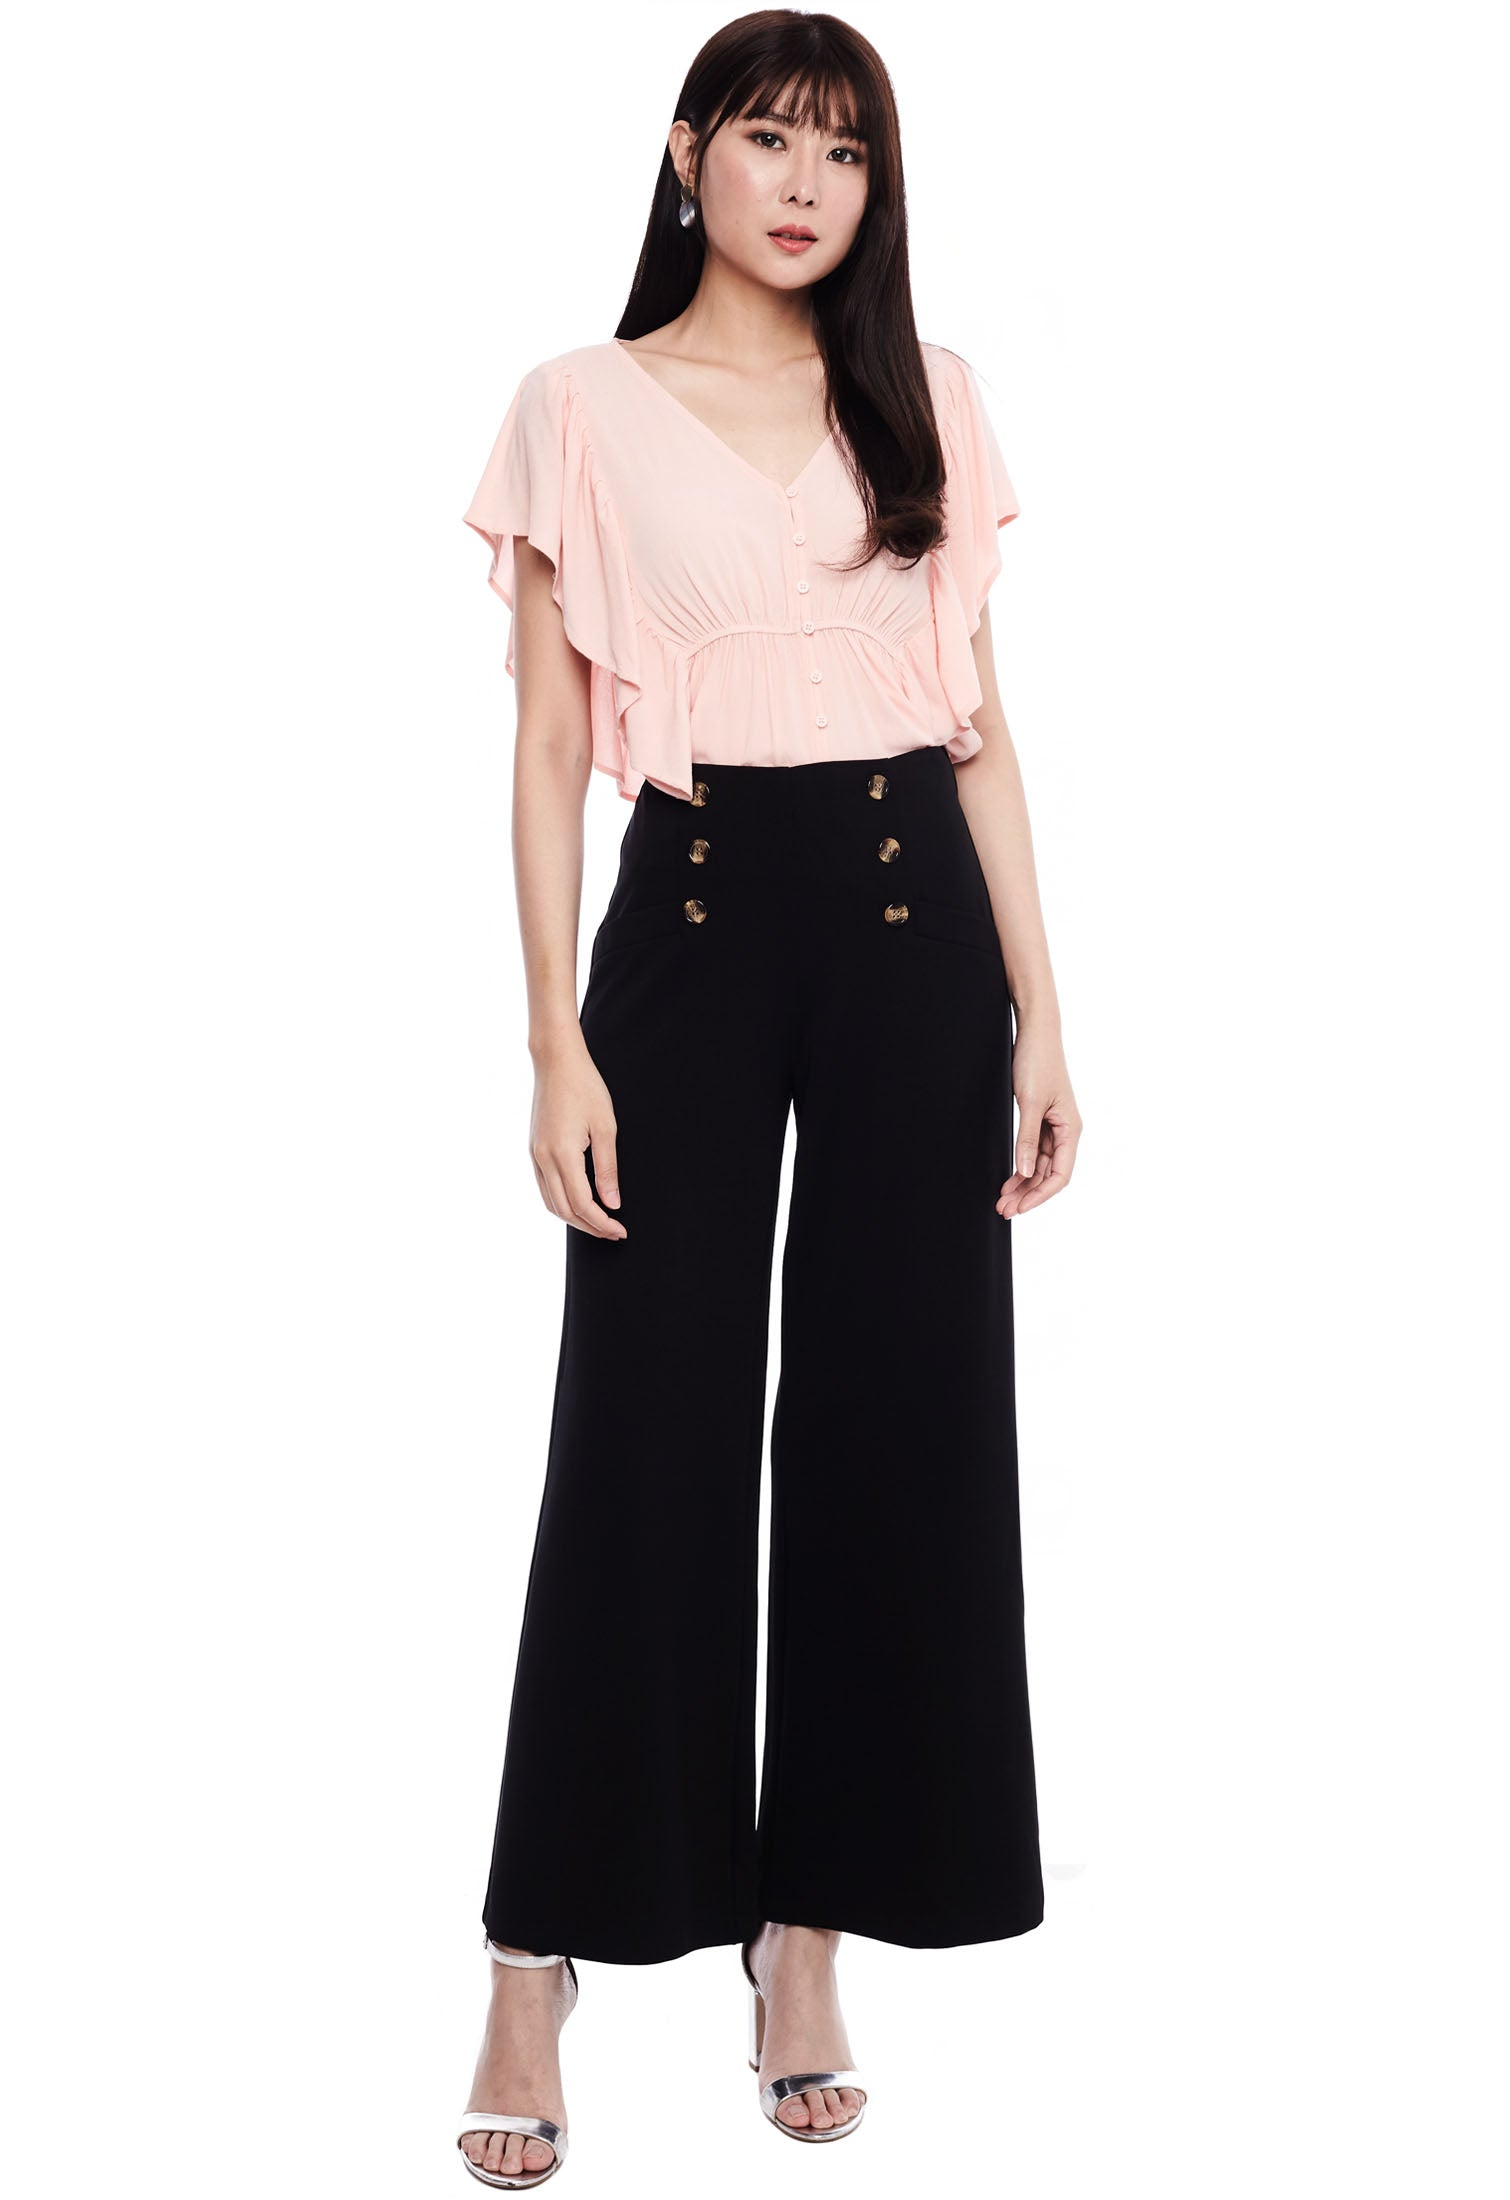 Cinched Waist Buttoned Crop Top